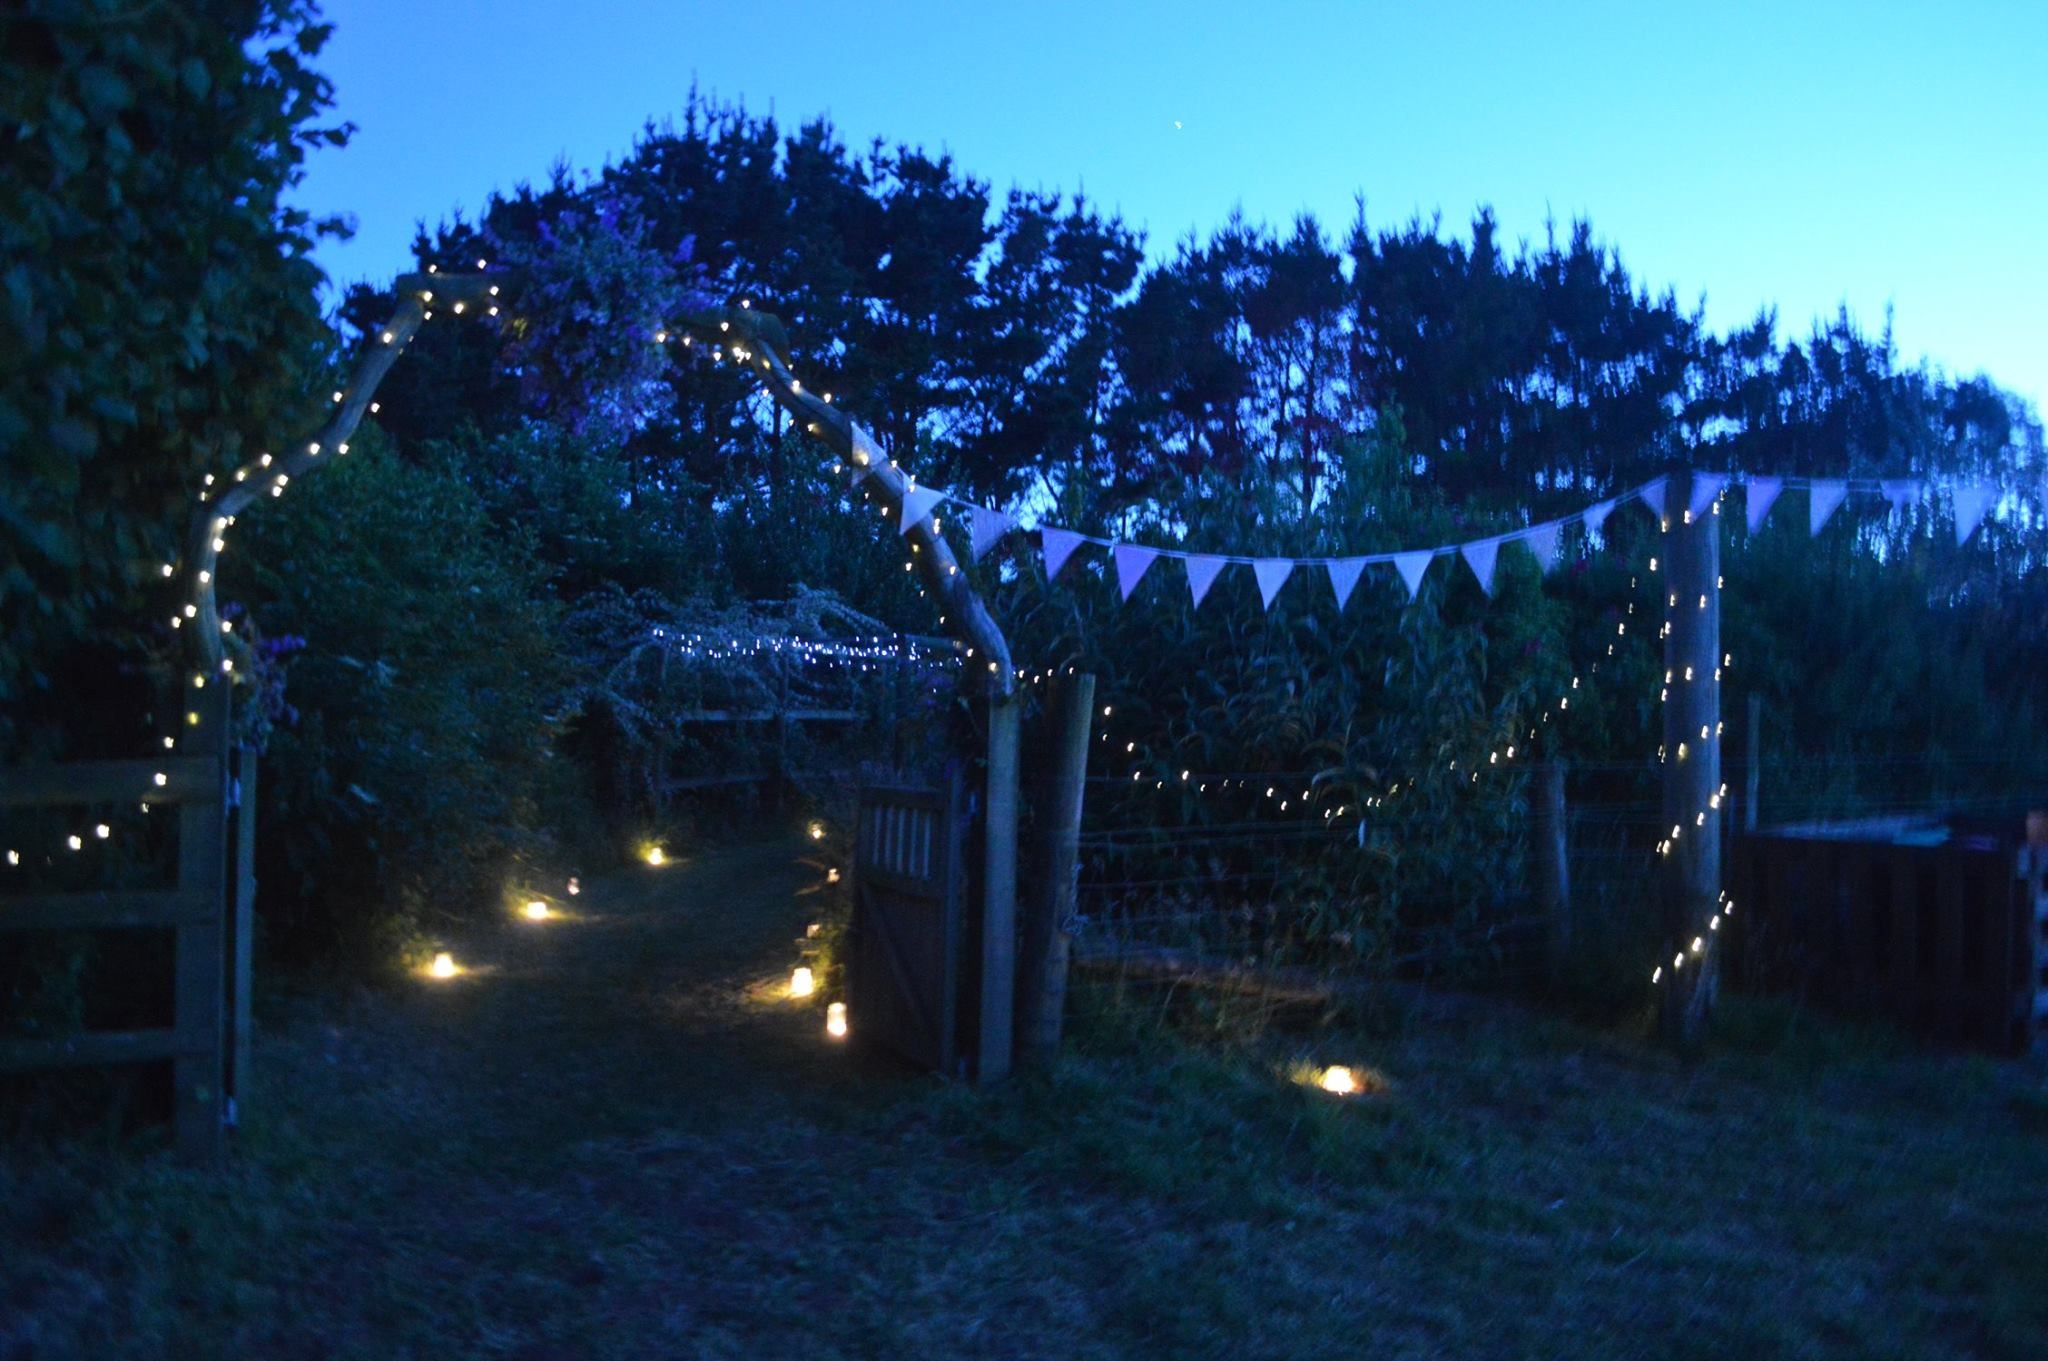 ash-rescue-centre-devon-weddings-venue-night-garden